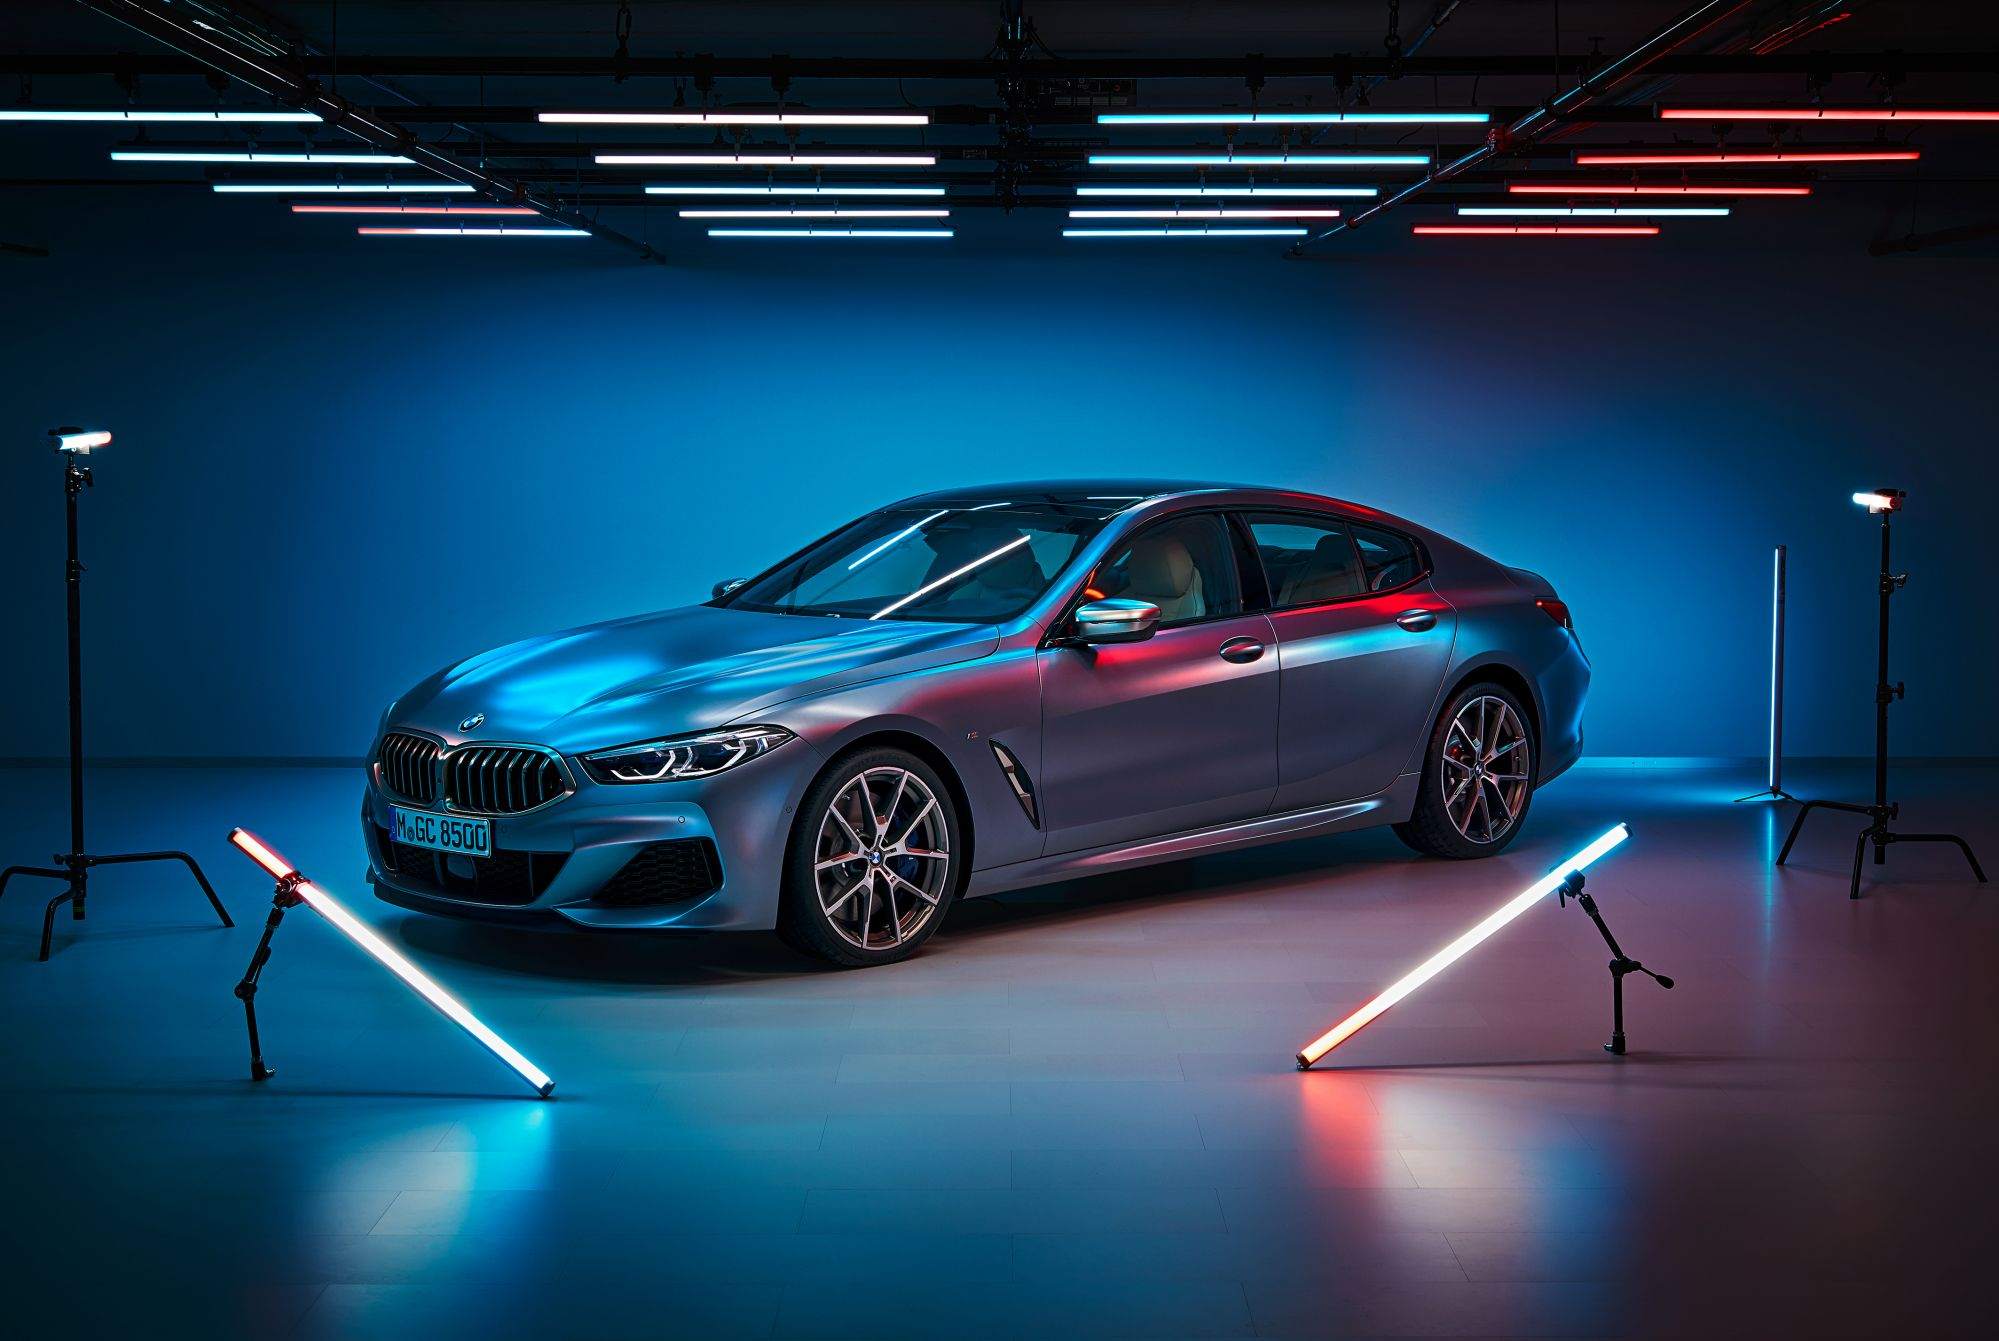 The New BMW 8 Series Lives Up To Its Iconic Name As The Marque's Top Grand Tourer